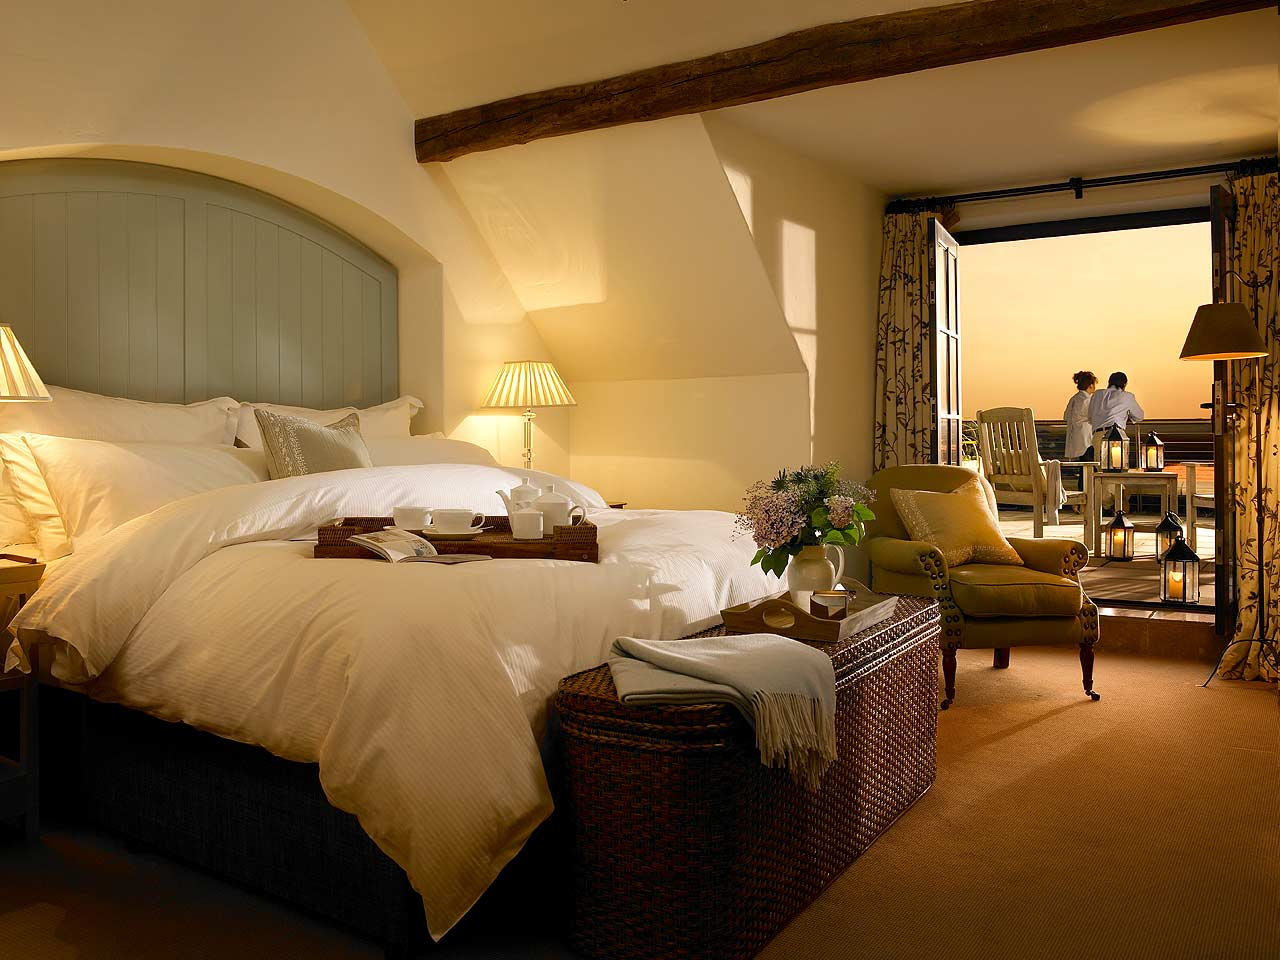 Lodge at doonbeg county clare ireland luxandtravel for Luxury hotel accommodation